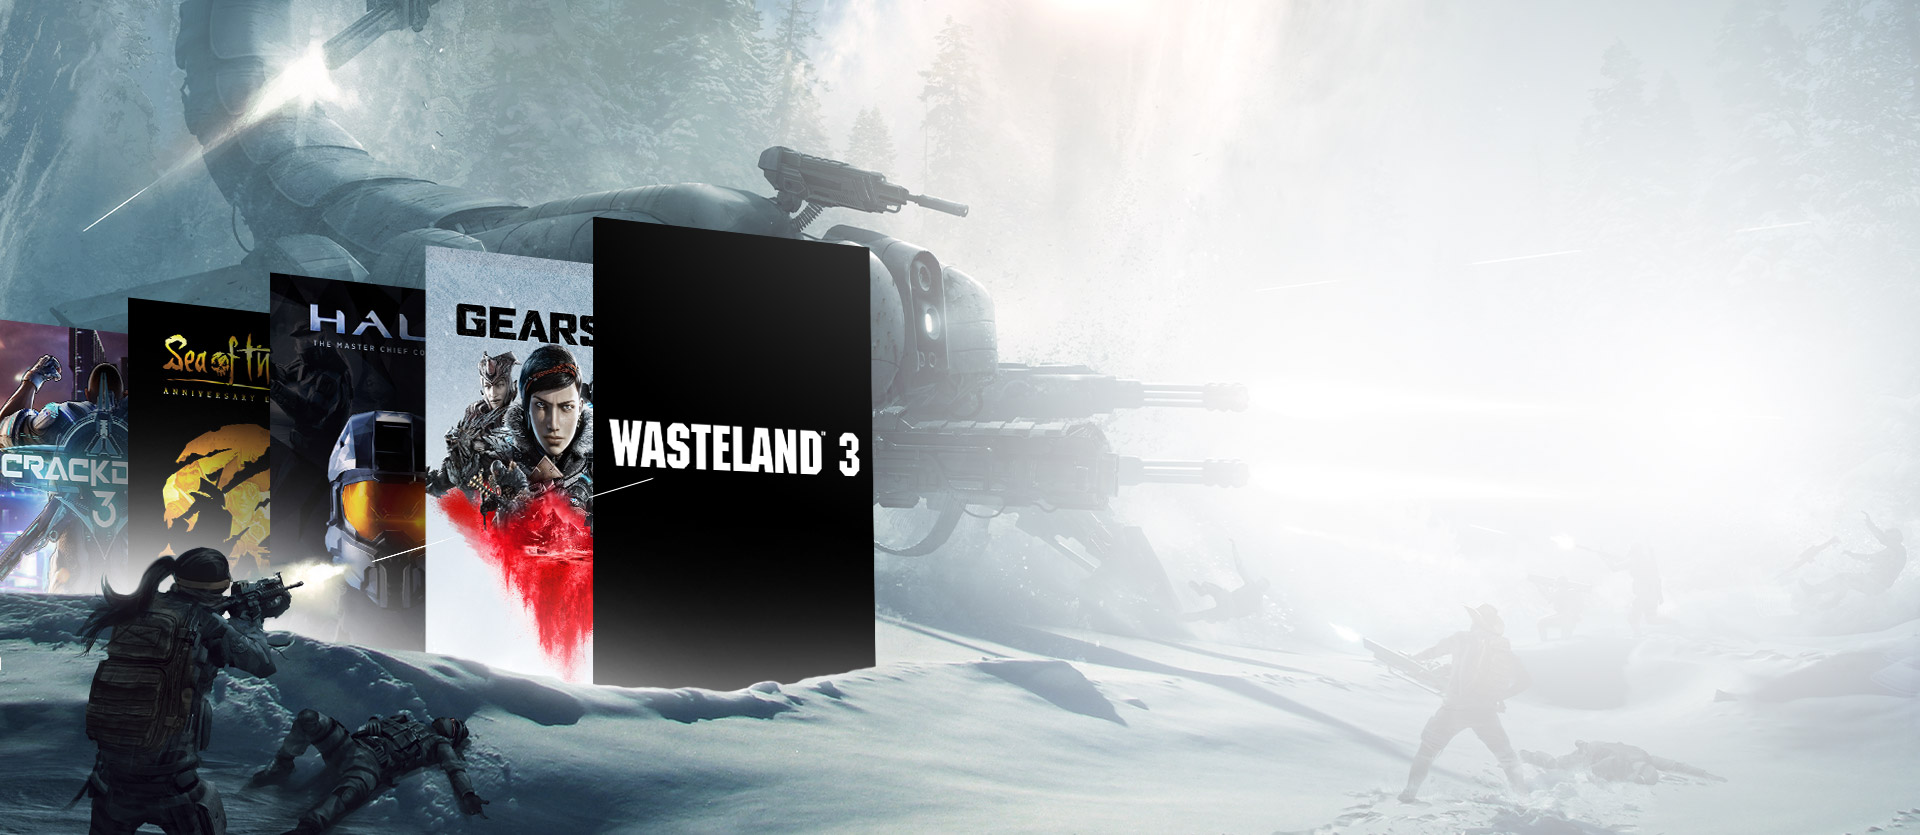 Xbox Game Pass games in a snowfield with a scorpion tank war scene